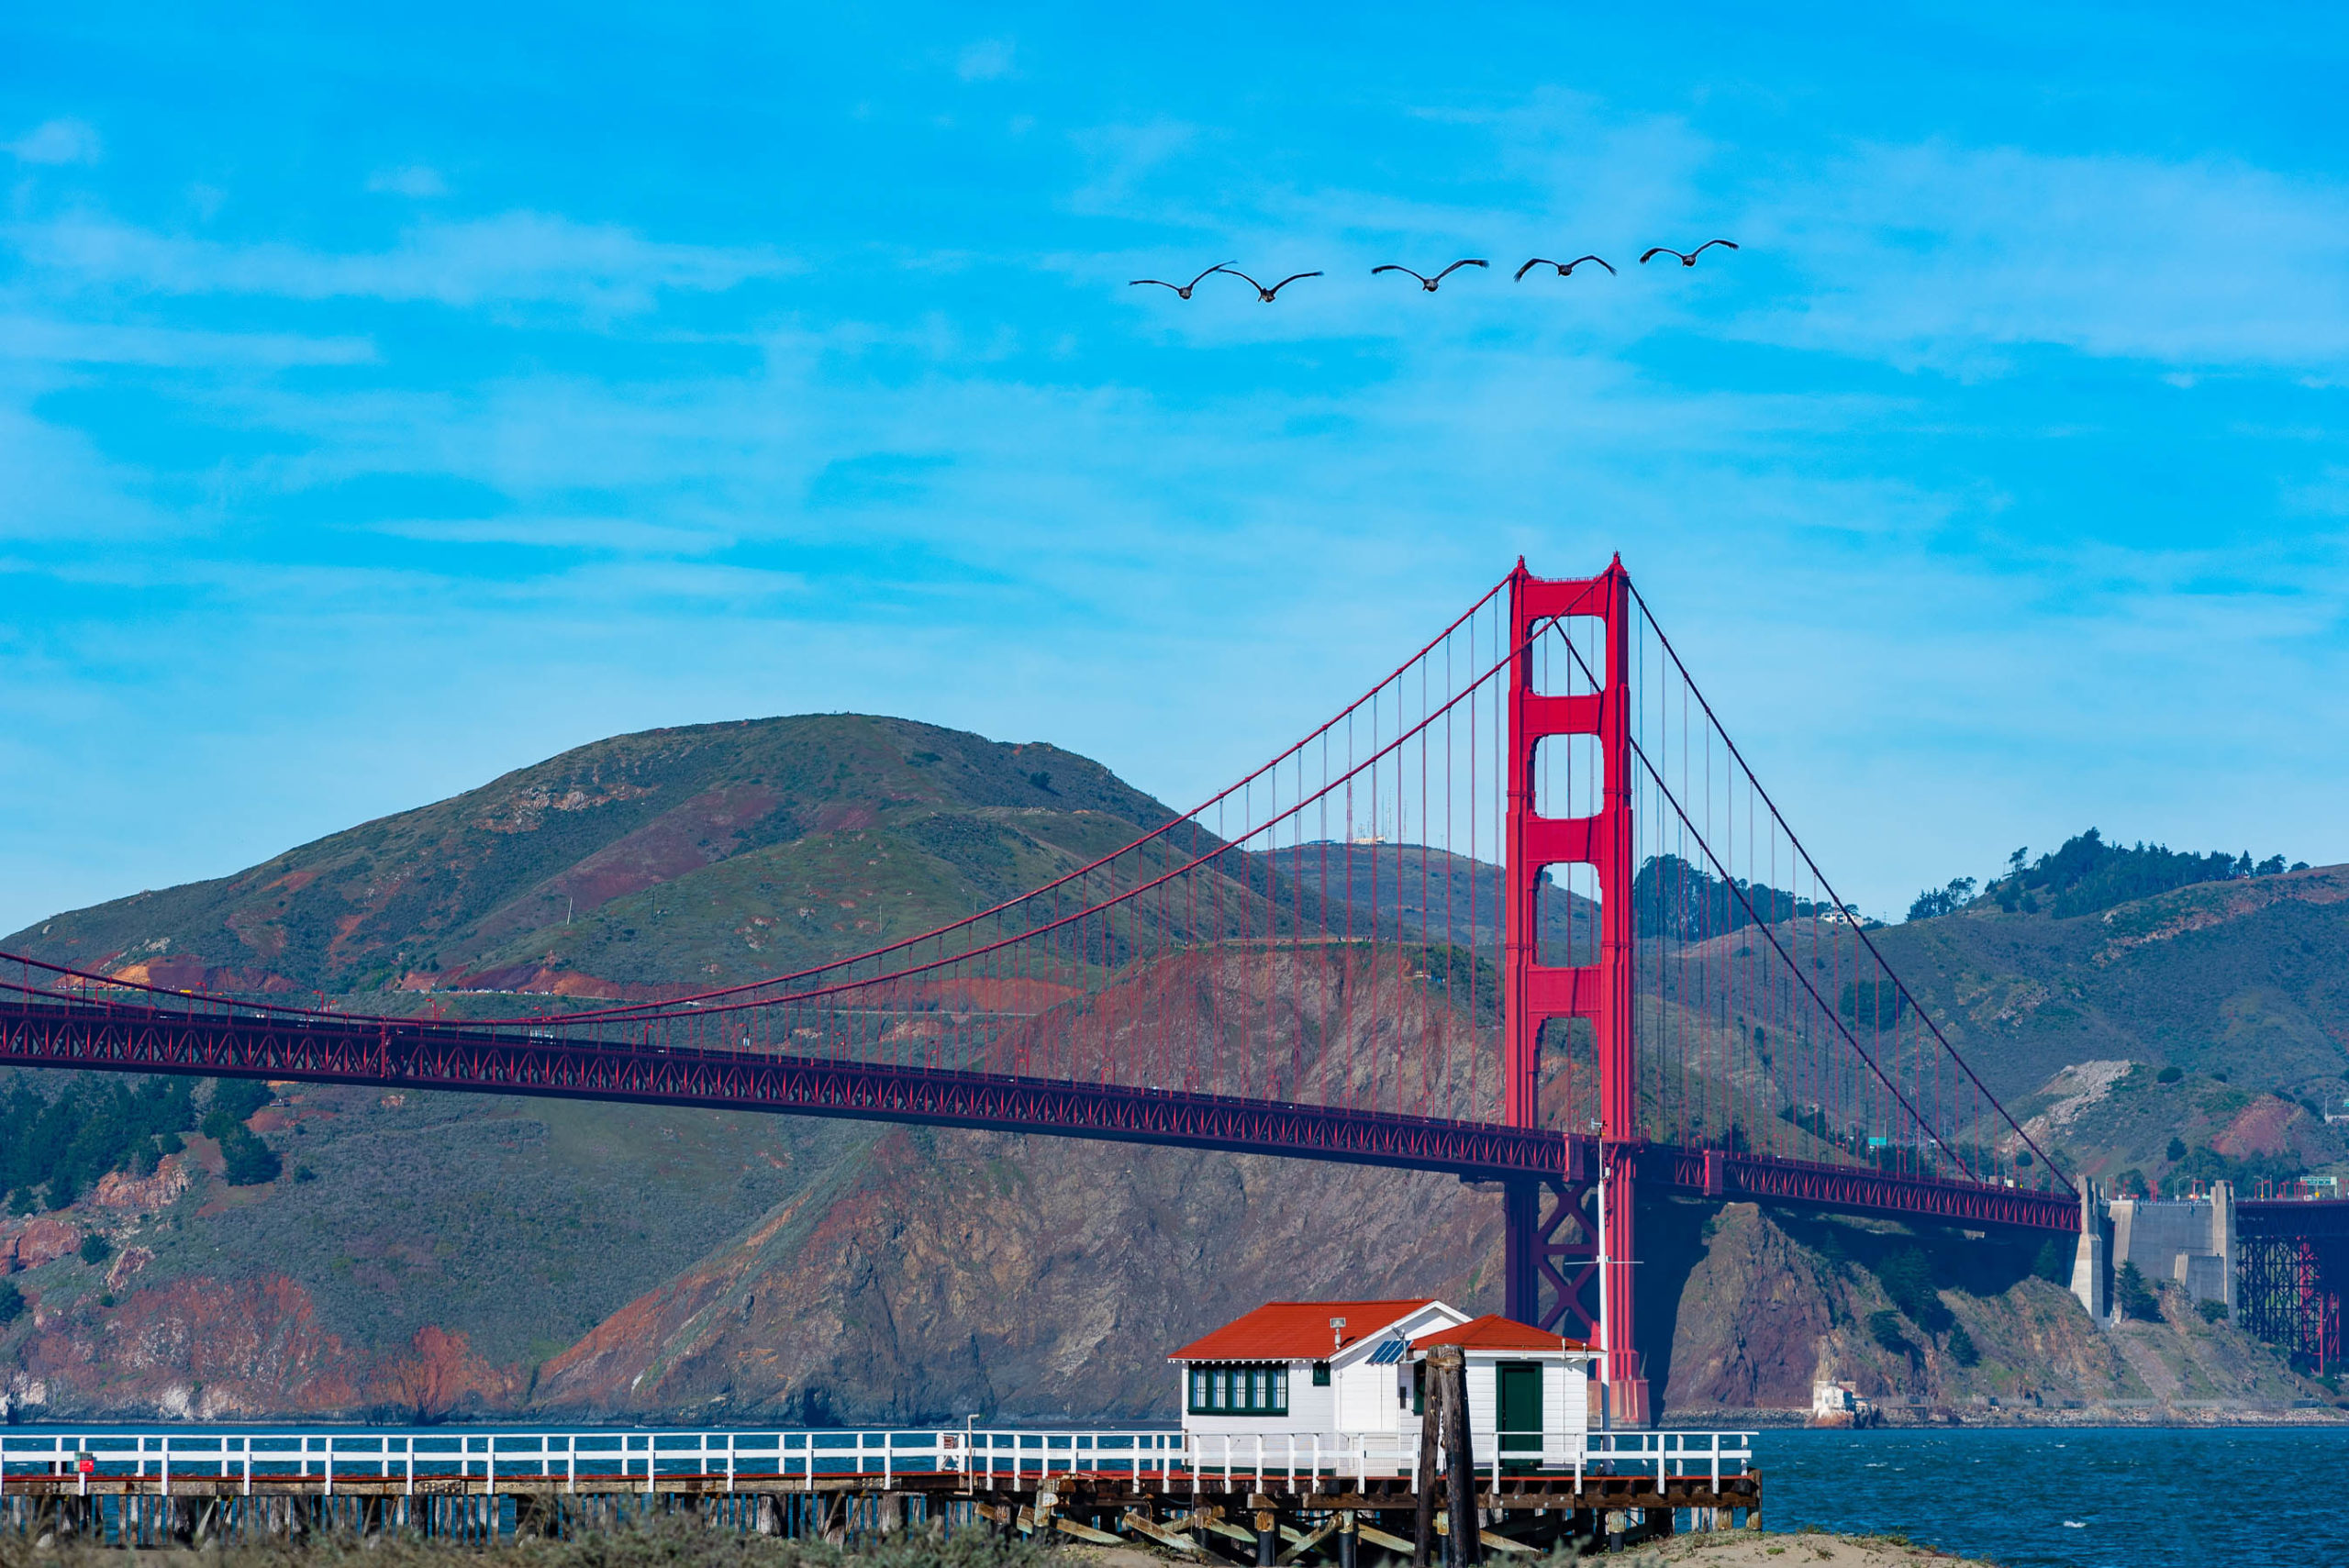 Pelicans flying by the Golden Gate Bridge